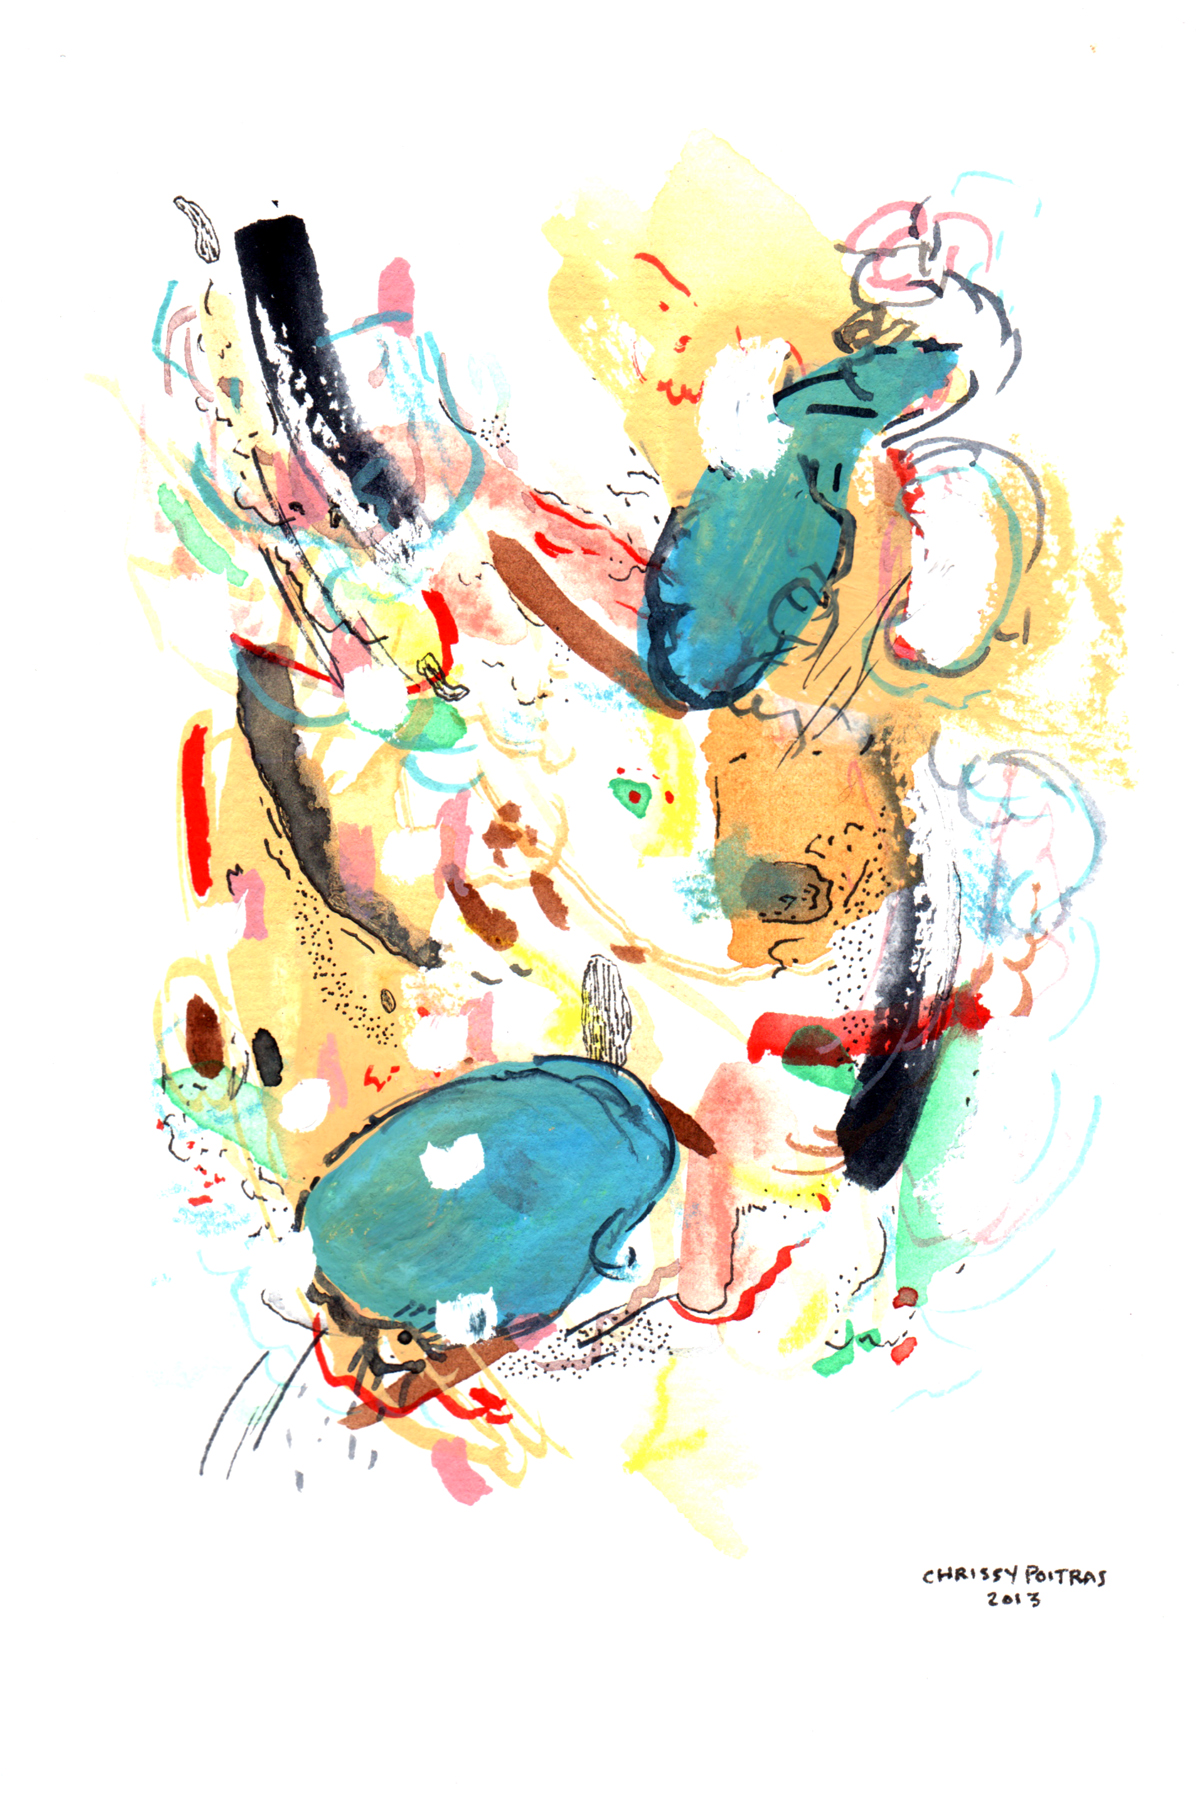 Chrissy Poitras, Painting, Abstract, Watercolour, Small Work,